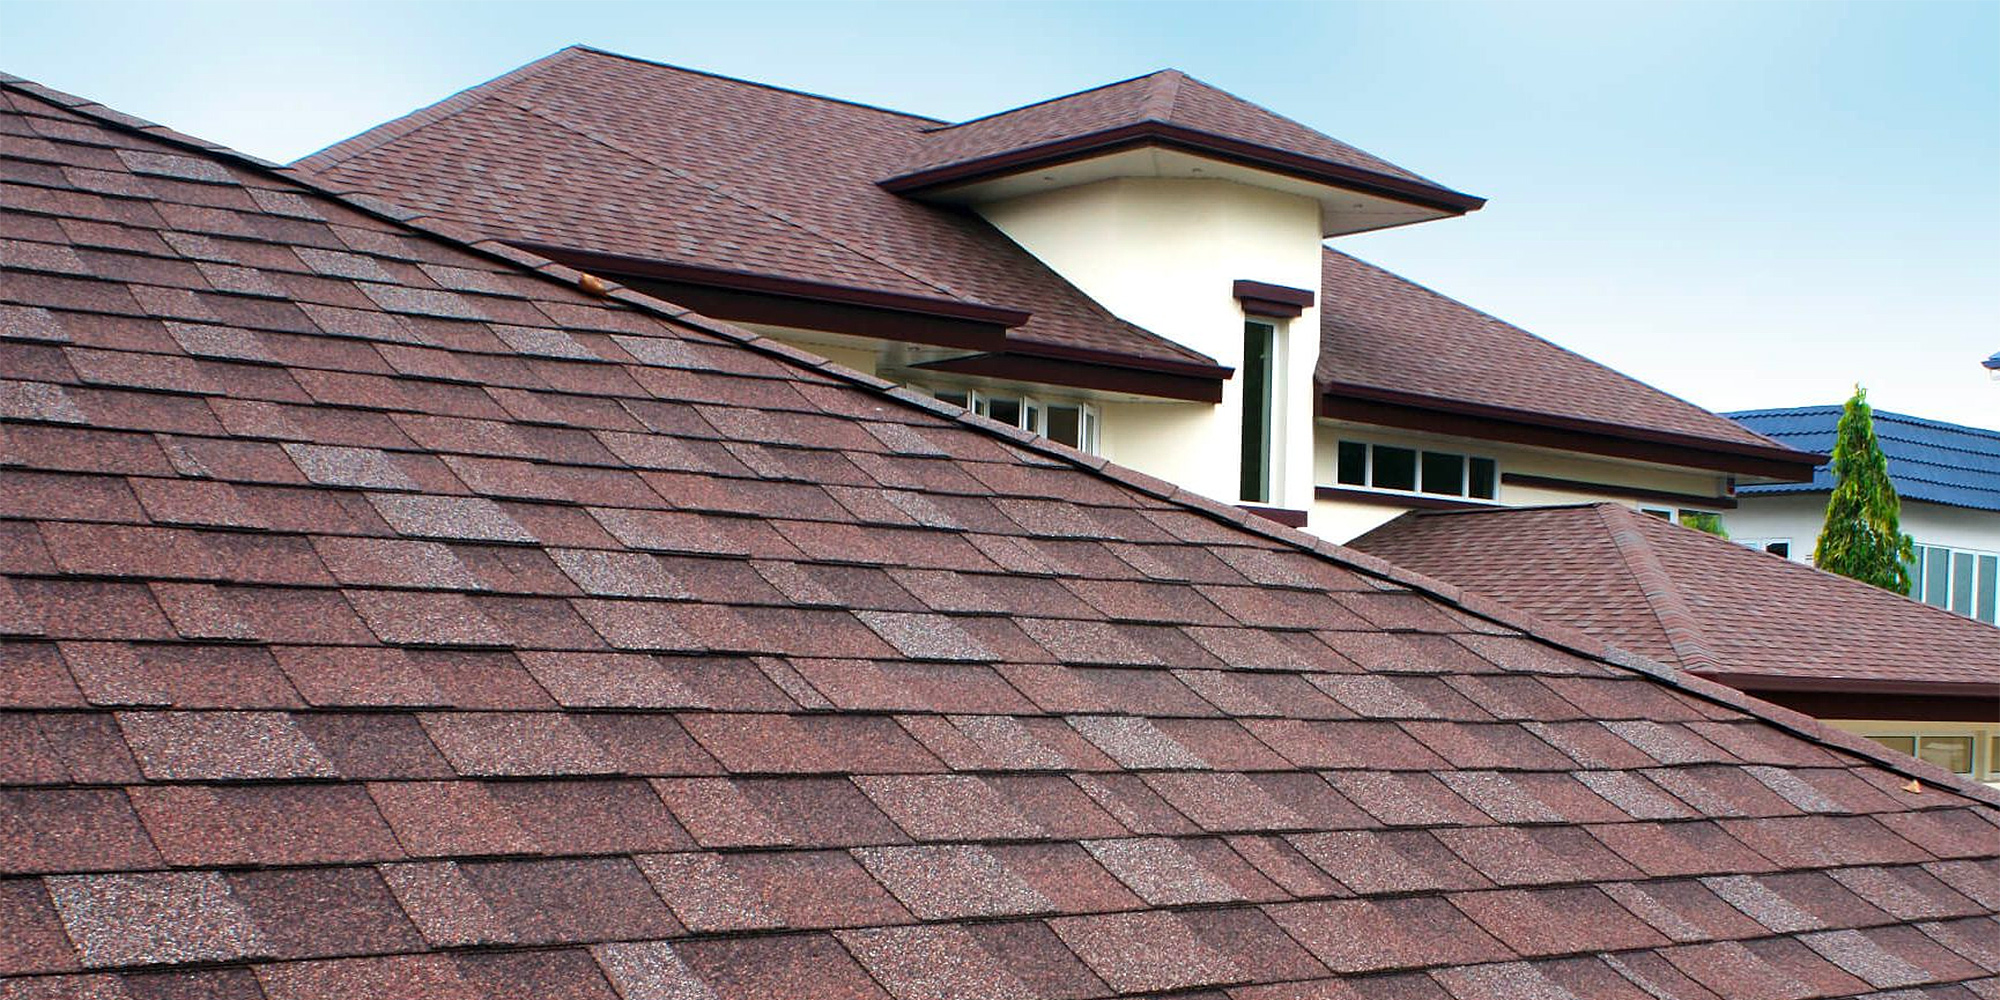 Planning Your Home: What Should You Place on Your Roof?